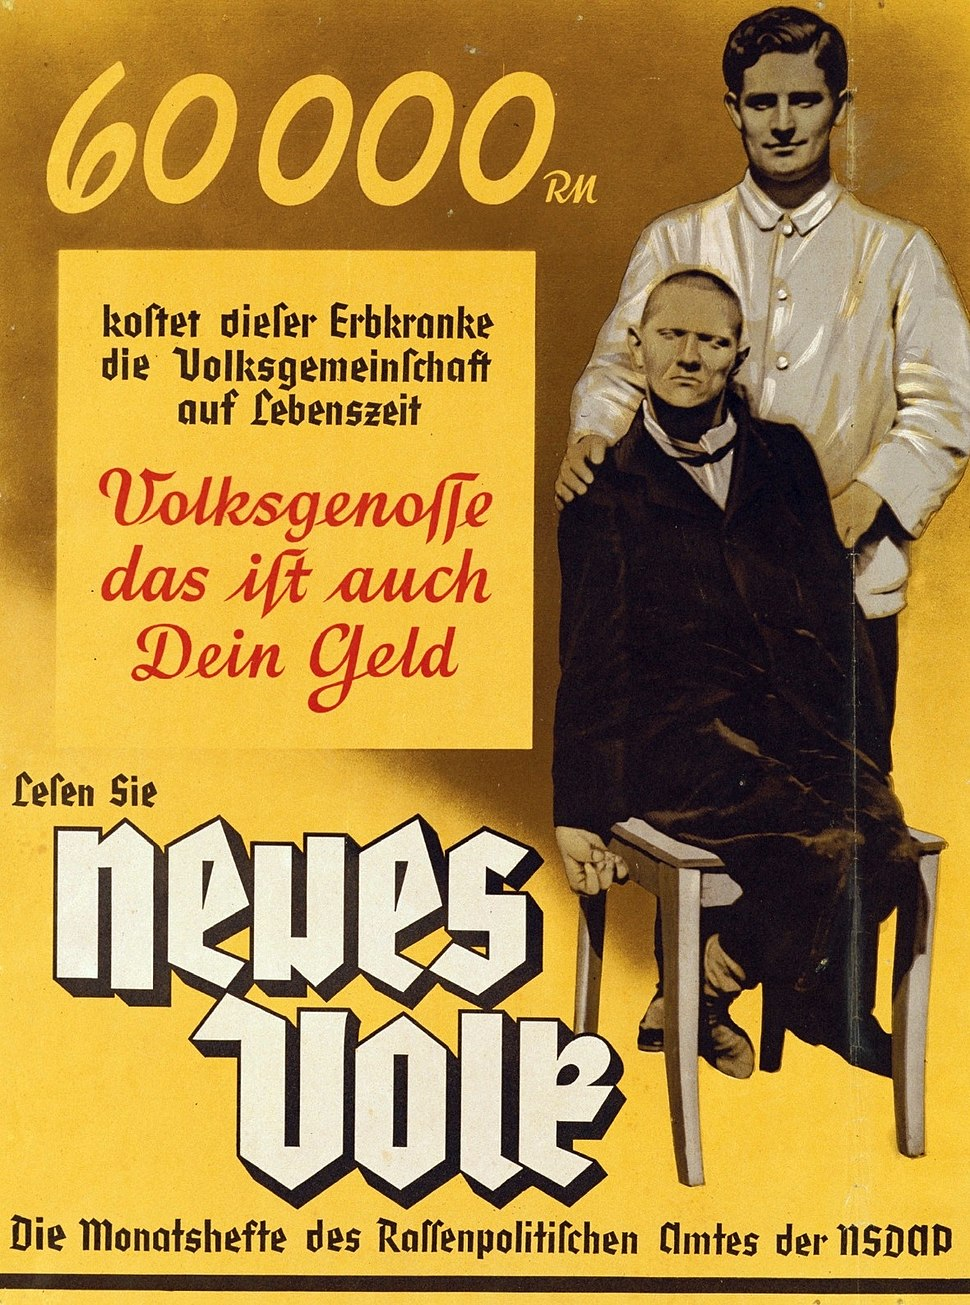 Neues Volk eugenics poster, c. 1937 (brightened).jpeg